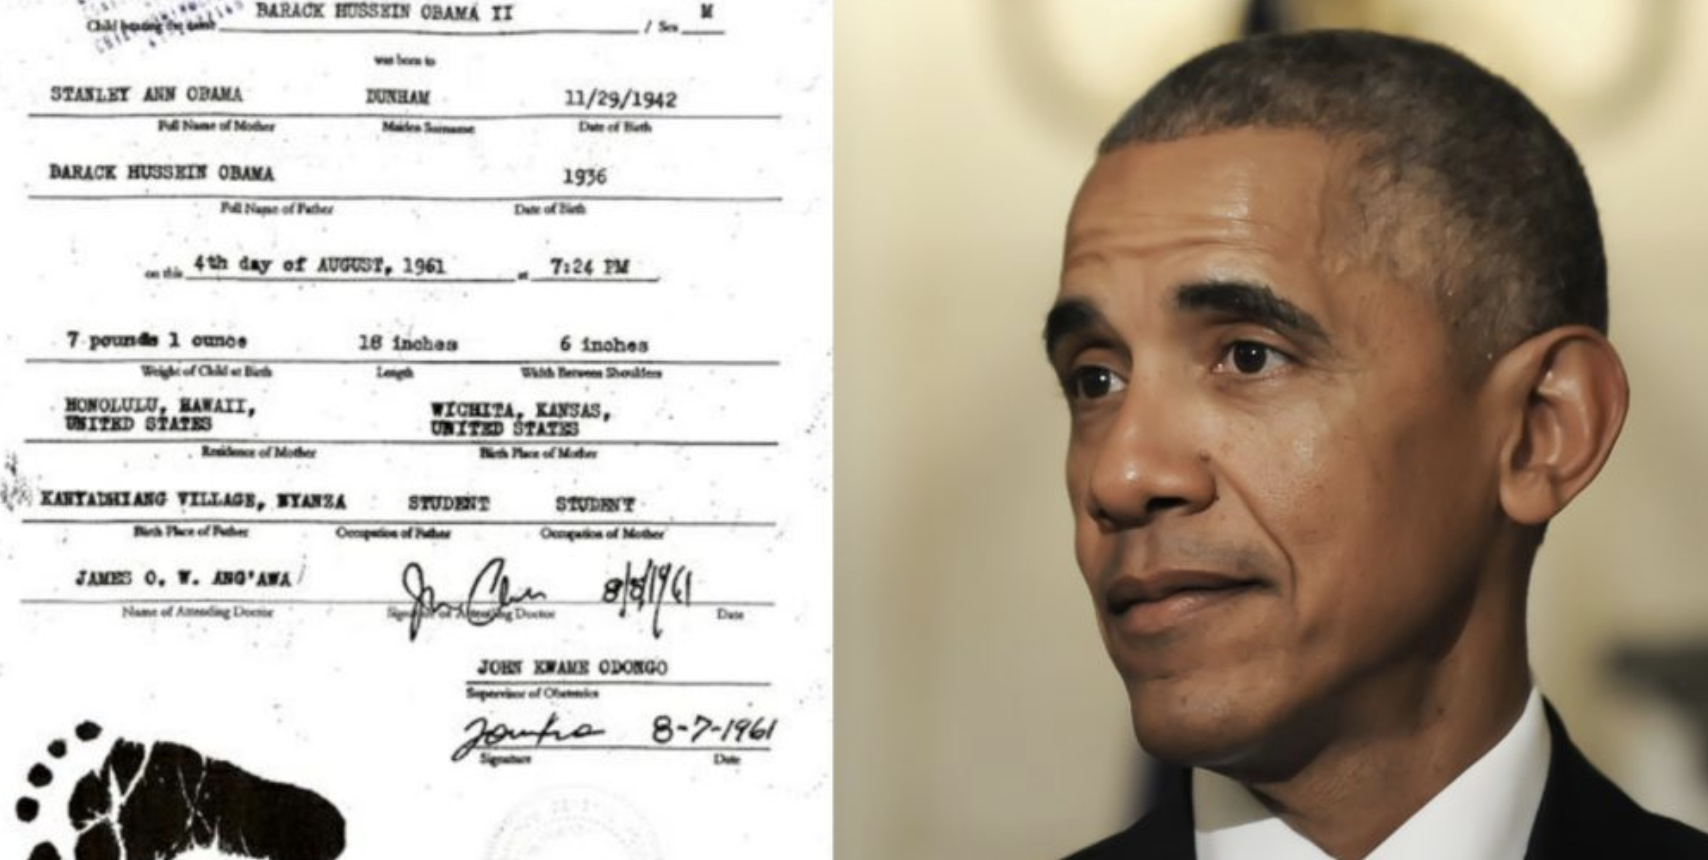 Obama's Real Birth Certificate Just Leaked..Was Trump Right The Entire Time?